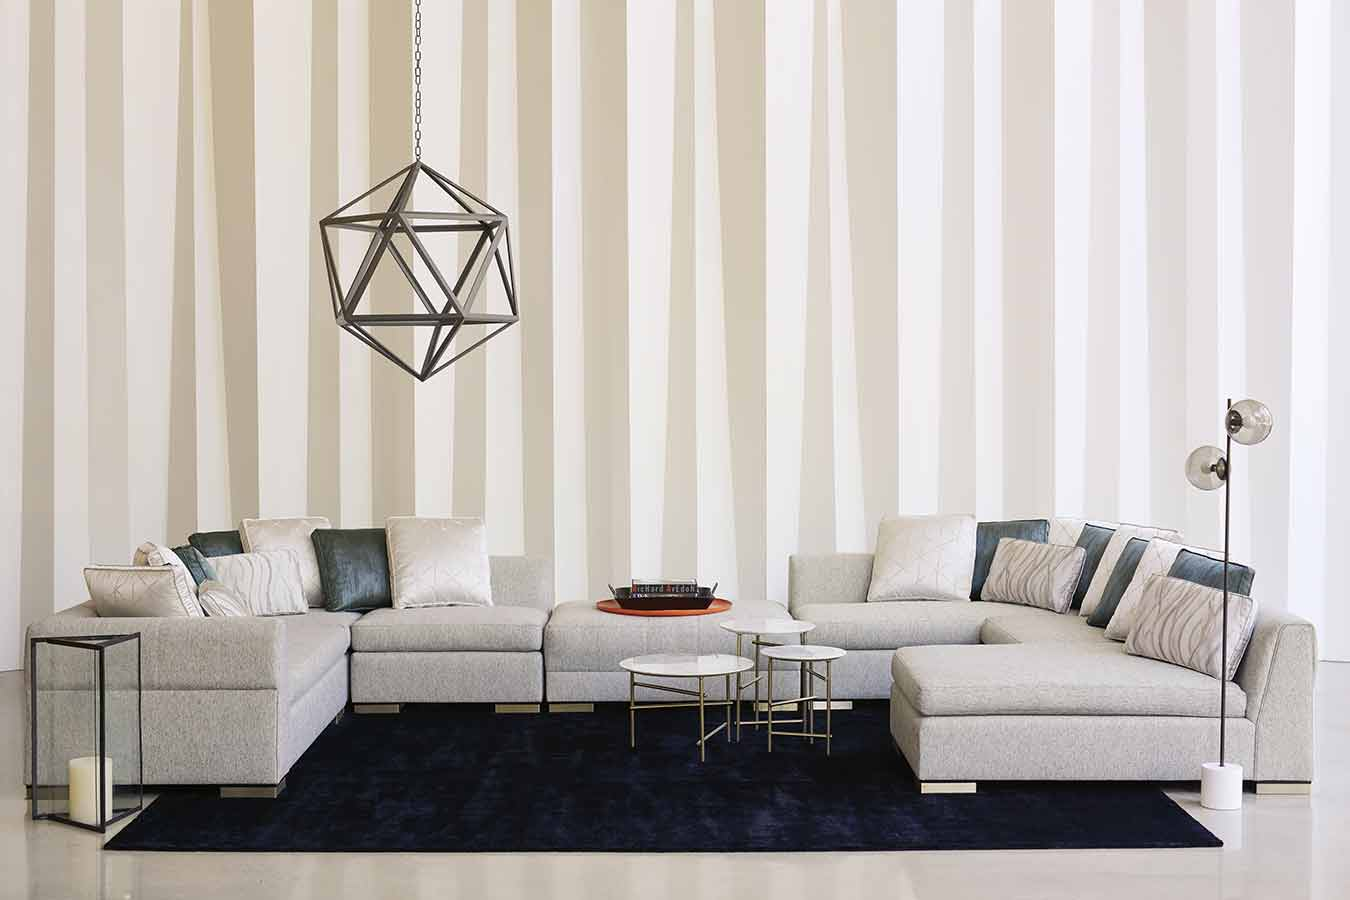 Modern Edge Collection Living Areas   Contemporary Modern Luxury Exclusive Designer Handcrafted Furniture   Sandton Johannesburg